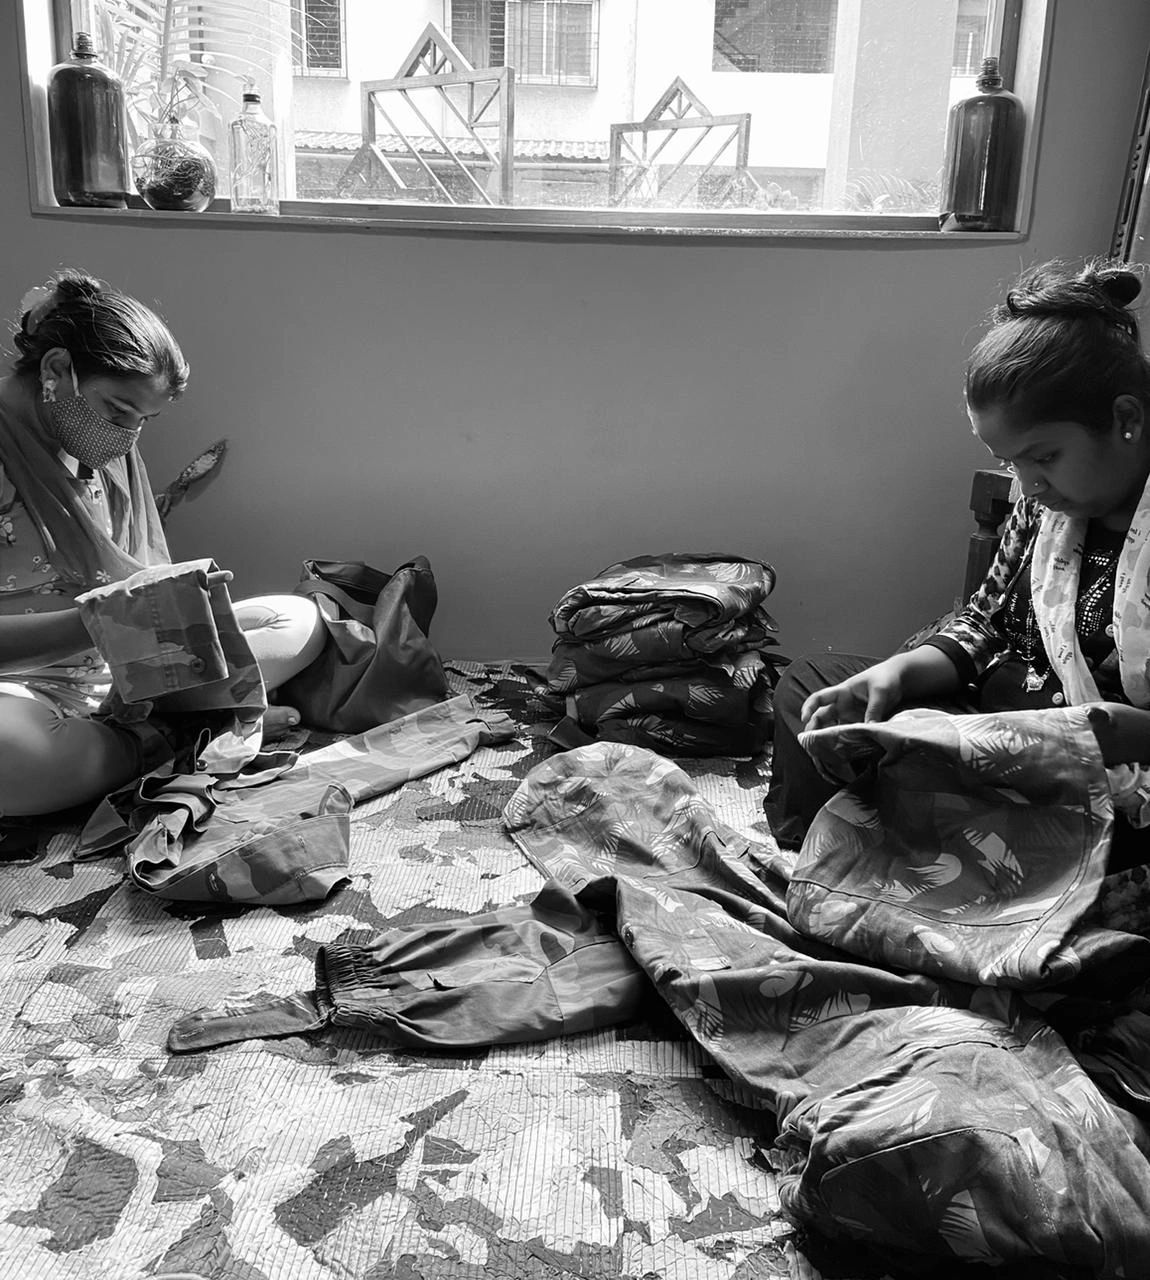 """Women at work, winning at everything they do because there is nothing they can't do. """"The fastest way to change society is to mobilize the women of the world.""""- Charles Malik (Durga Tai (left) and Pooja Didi (right) as seen in the photo)"""